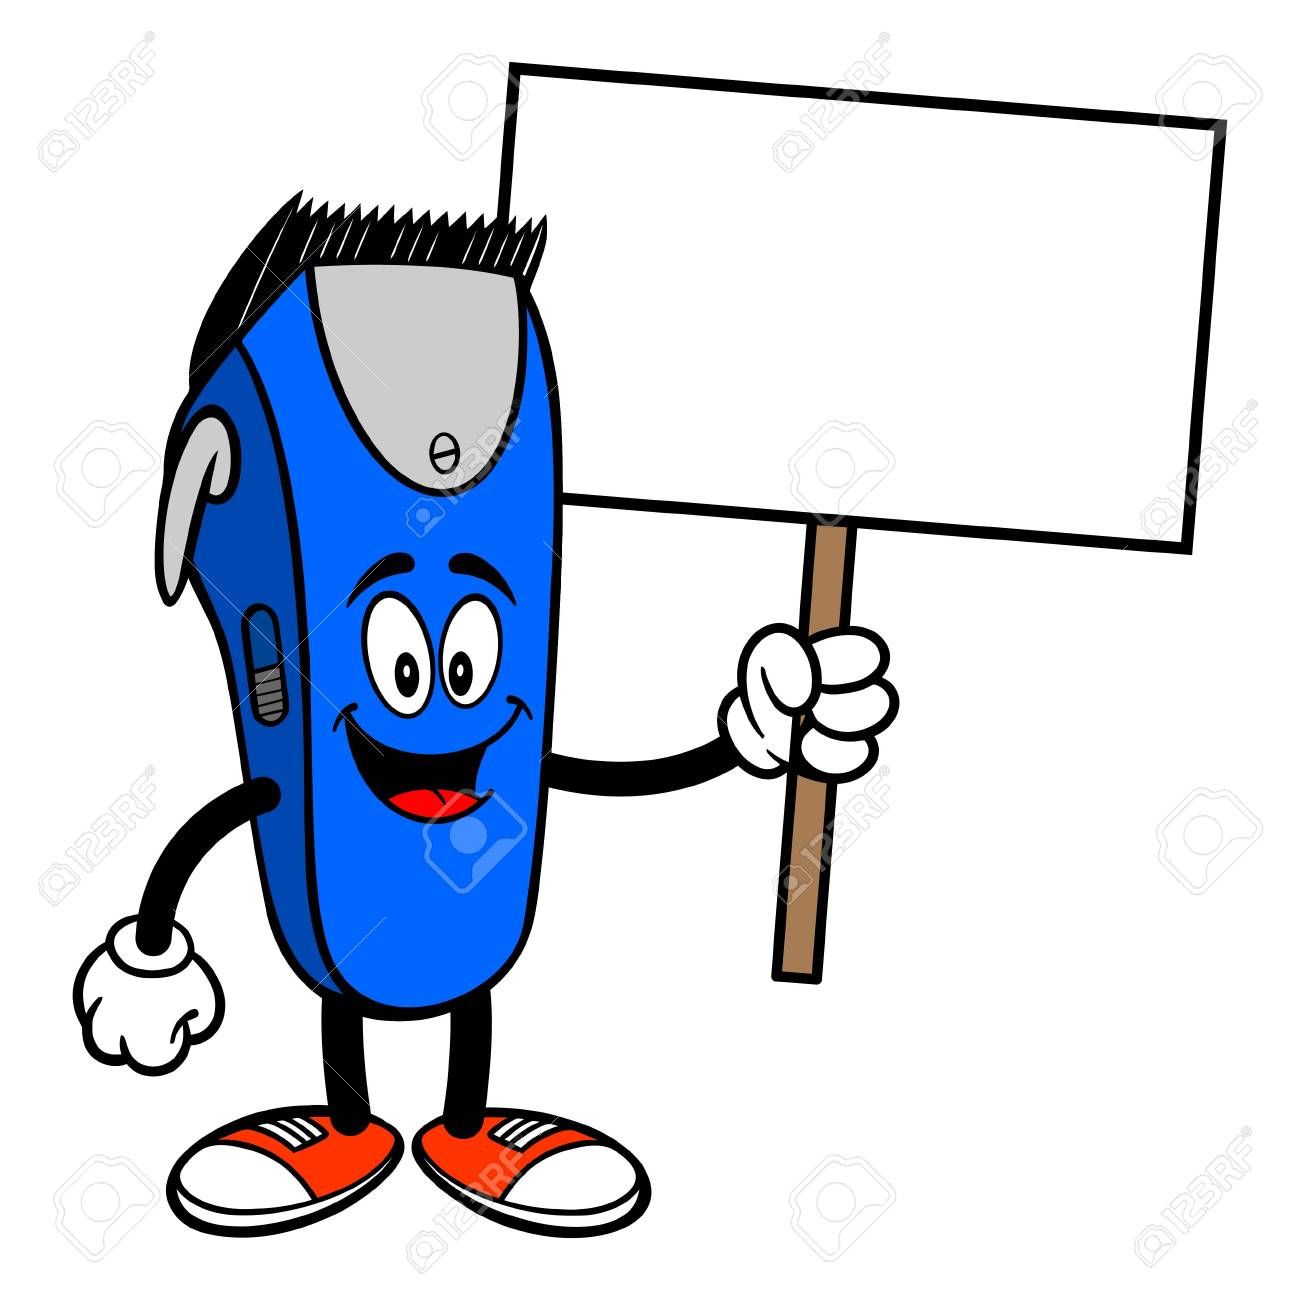 Electrical Hair Clipper Mascot With A Sign A Vector Cartoon Royalty Free Cliparts Vectors And Stock Illustration Image 120067397